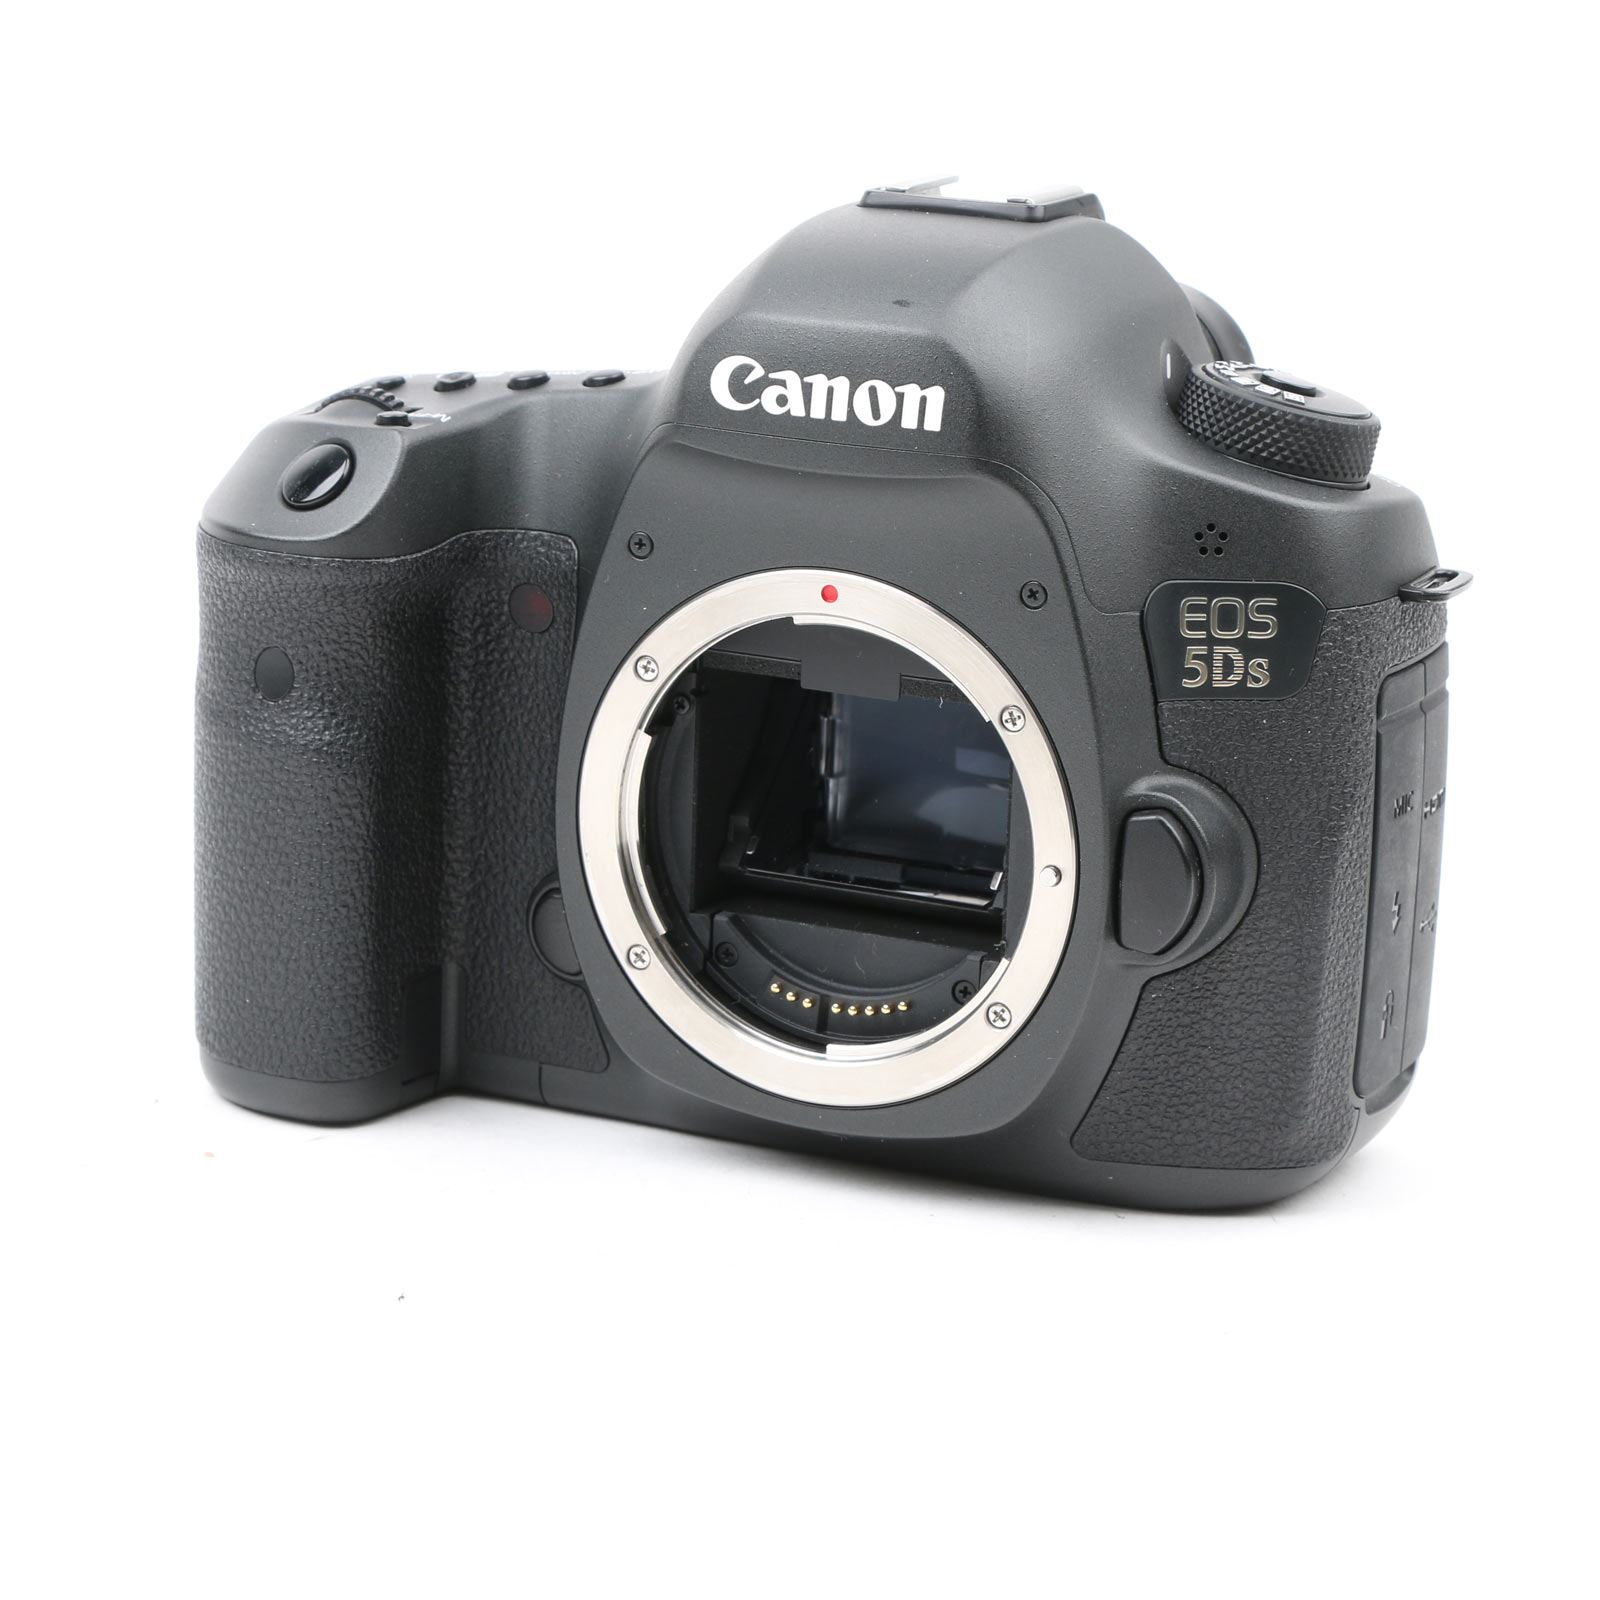 Image of Used Canon EOS 5DS Digital SLR Camera Body